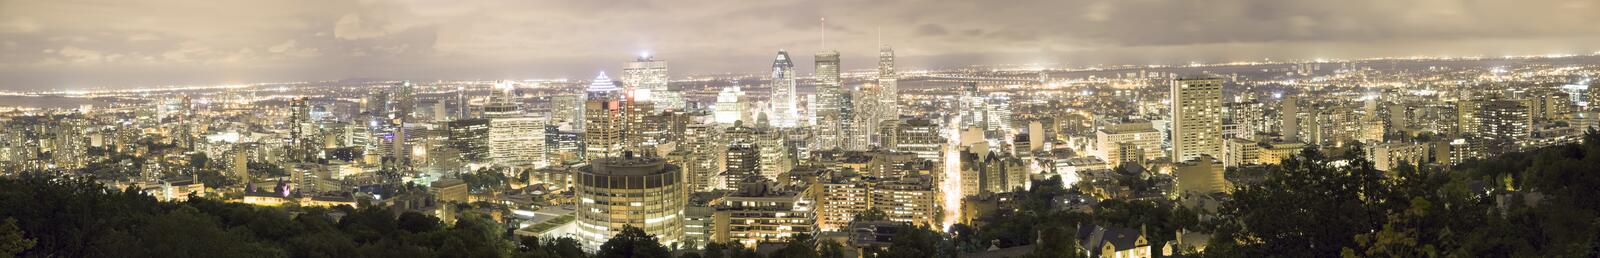 Night panorama of Montreal from Mont Royal, Quebec, Canada stock image